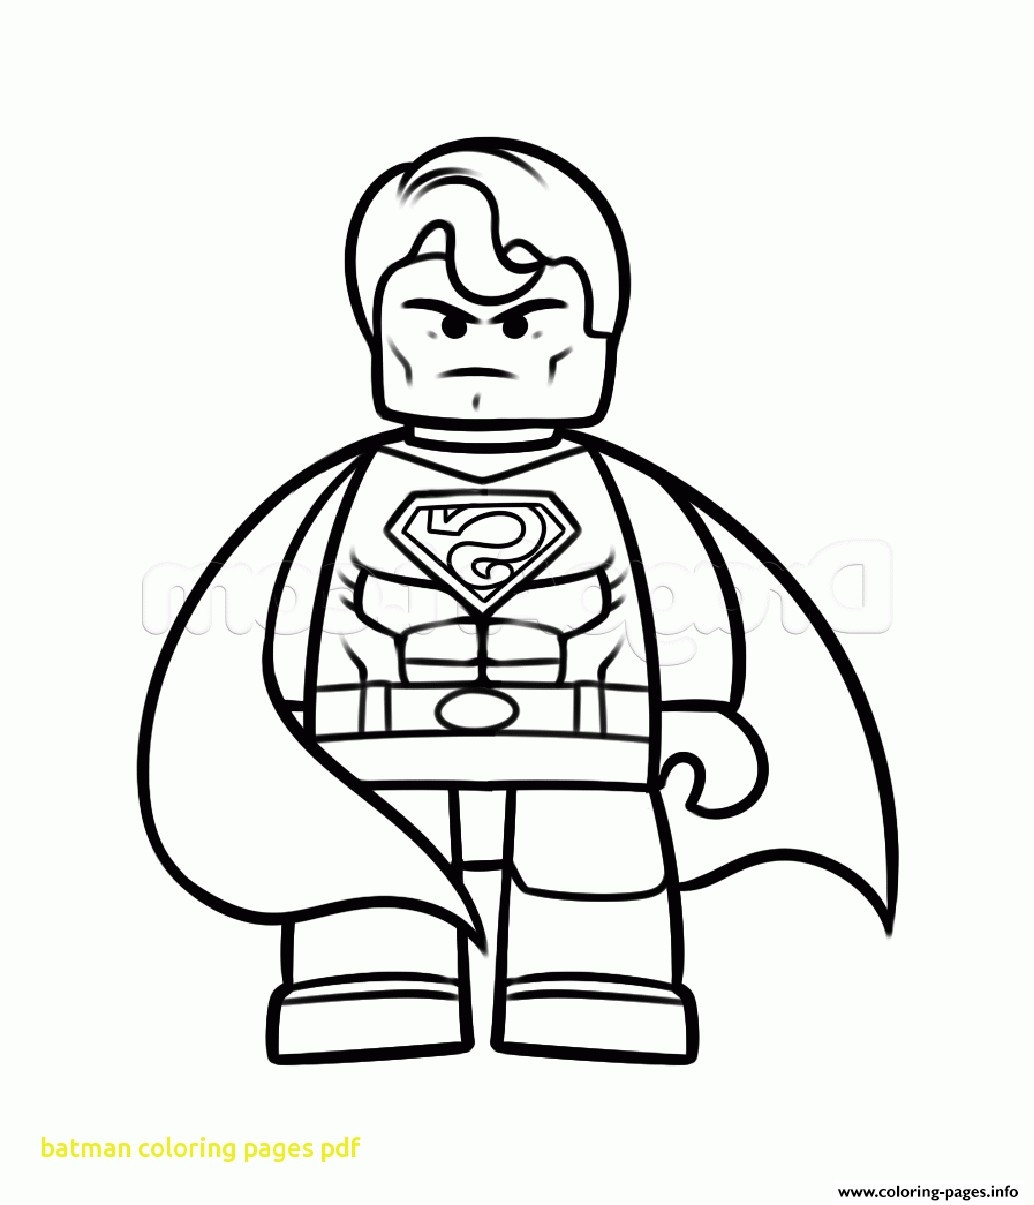 Batman Superman Coloring Pages At Getdrawings Com Free For